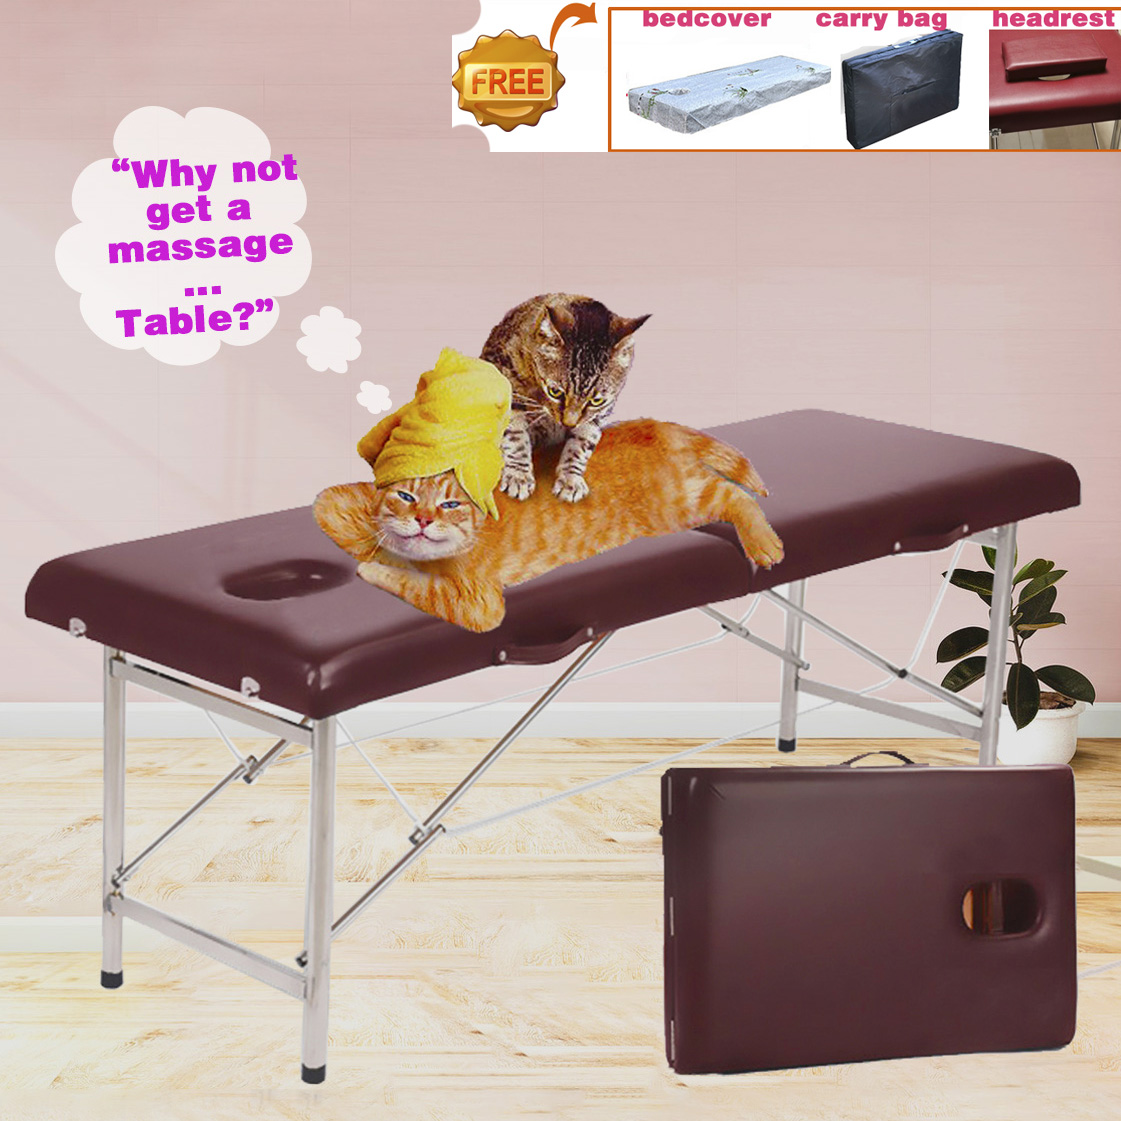 Portable Massage Table Professional Folding Aesthetic Spa Tattoo Stretchers  Couch Beauty Salon Foldable Massage Bed Esthetique